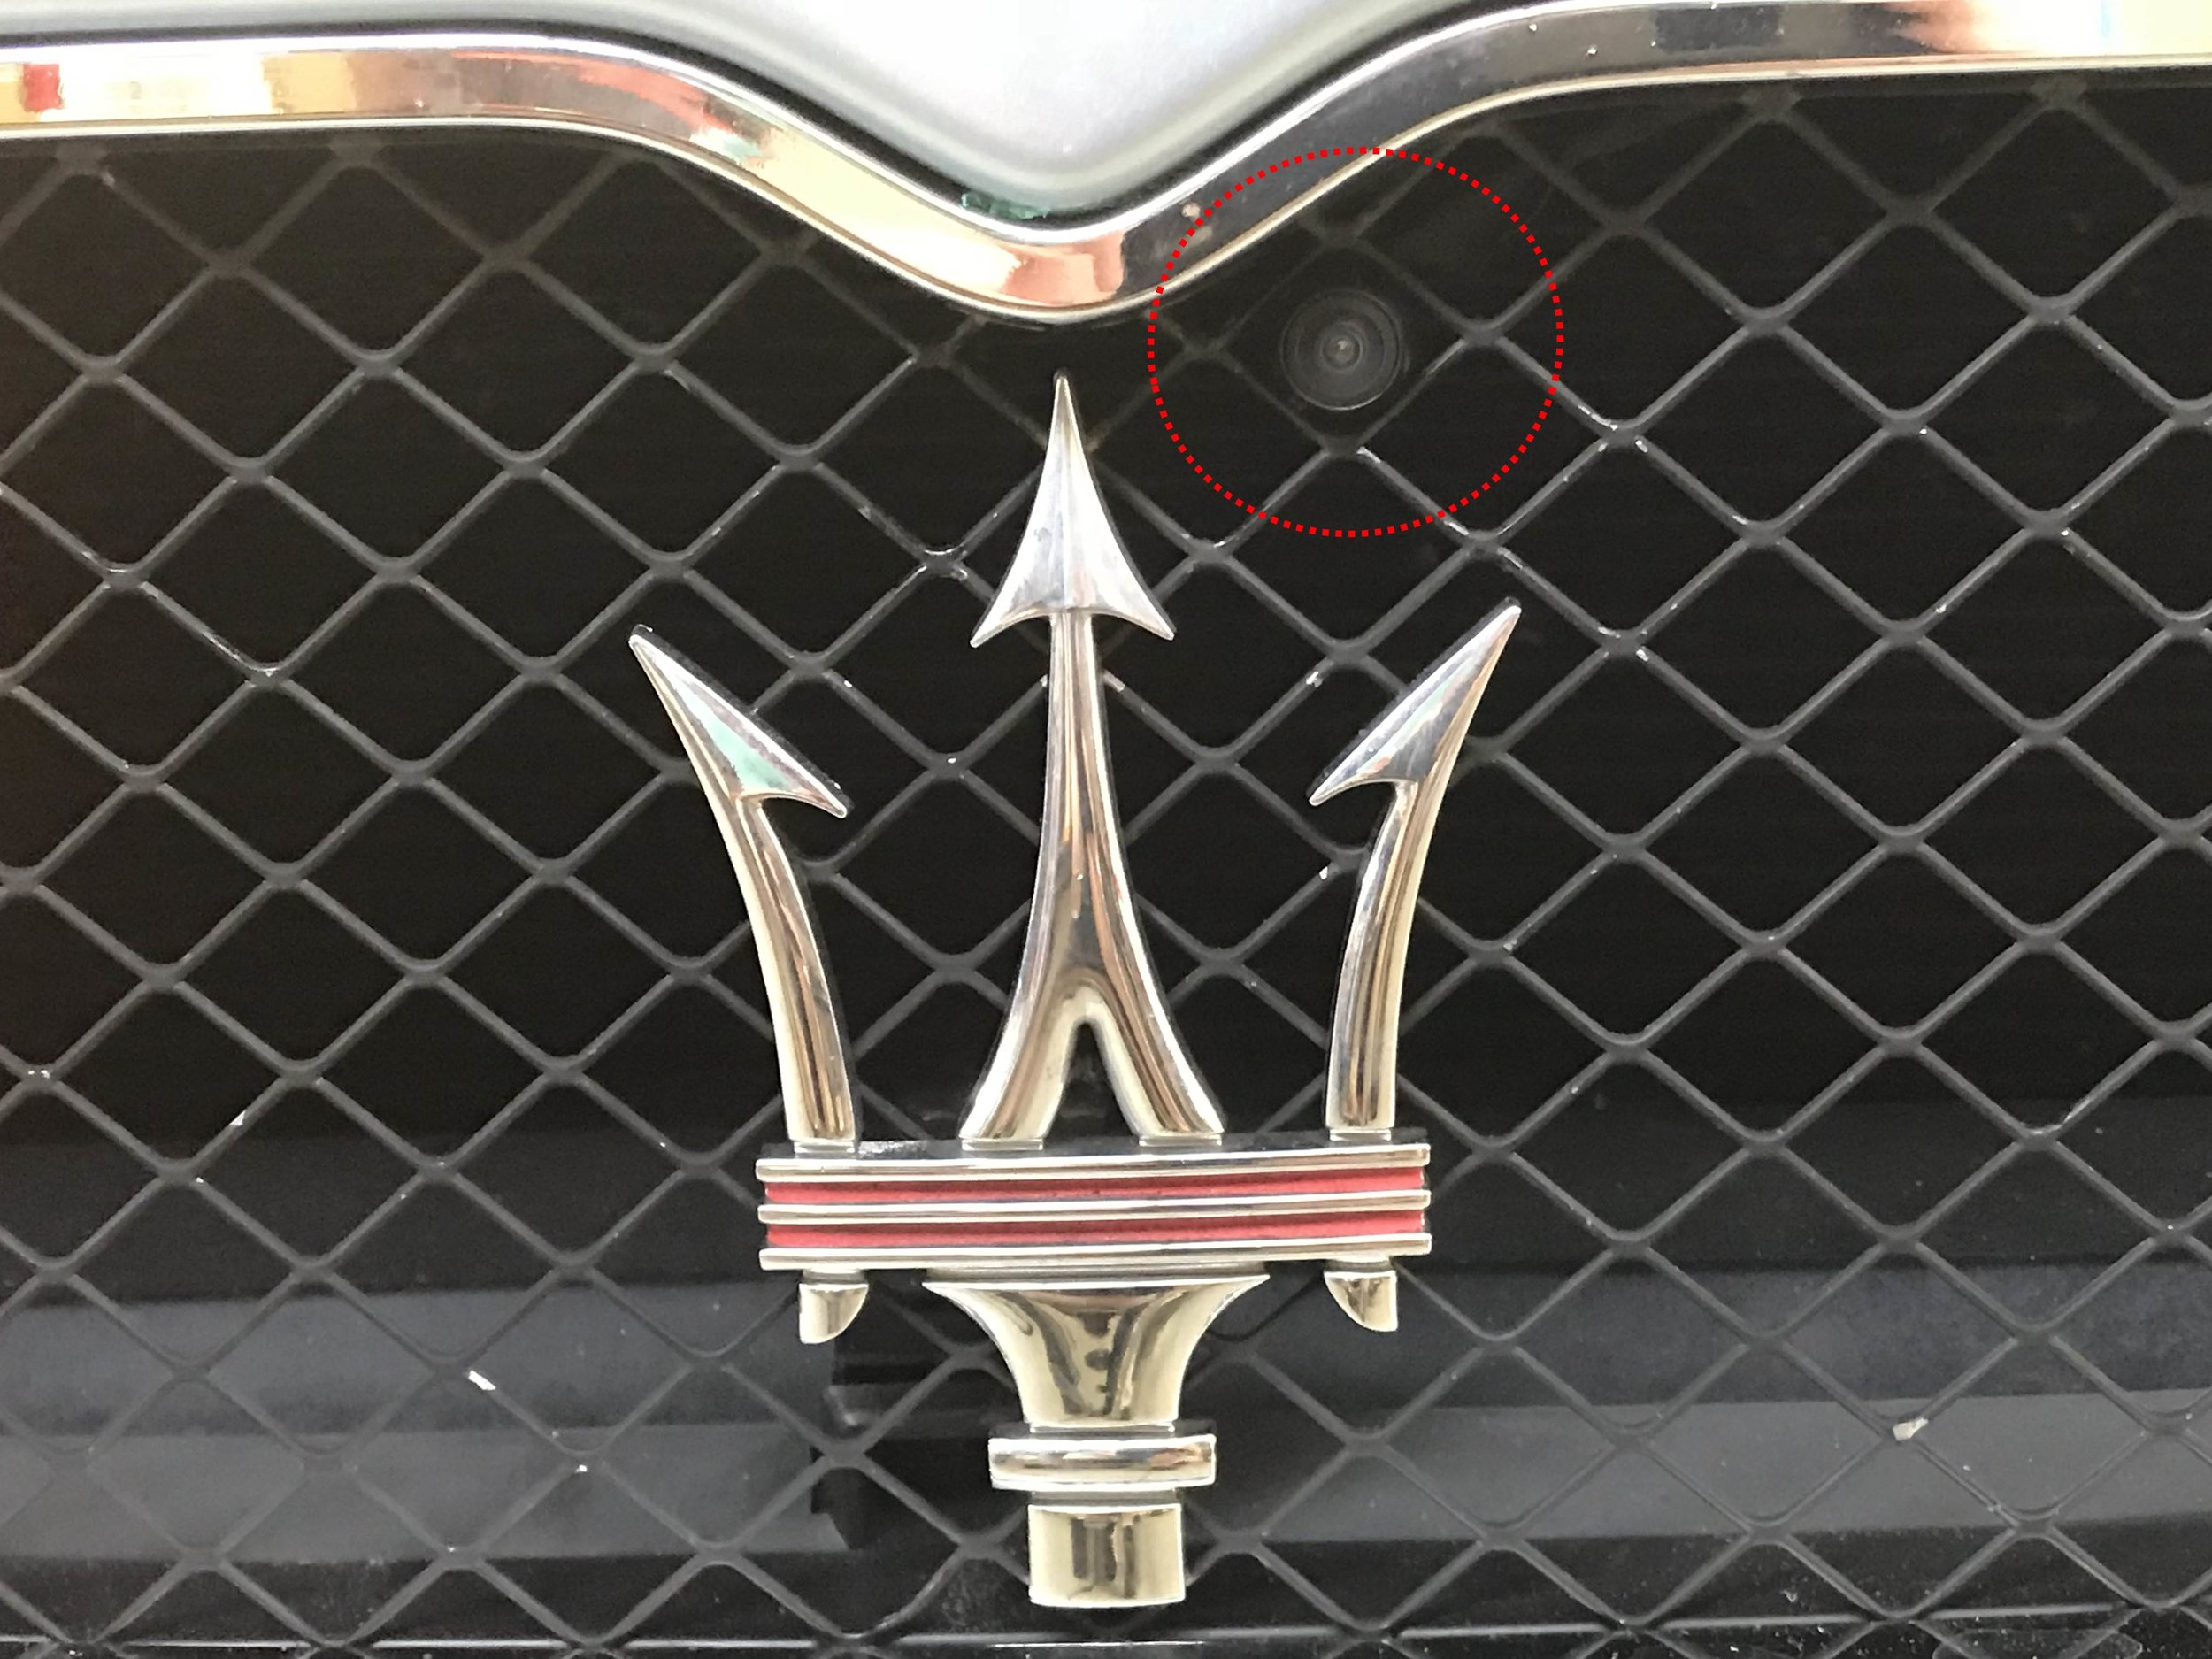 Highlighted in red above the trident in the grille, the camera looks straight out in front of the car without being noticeable